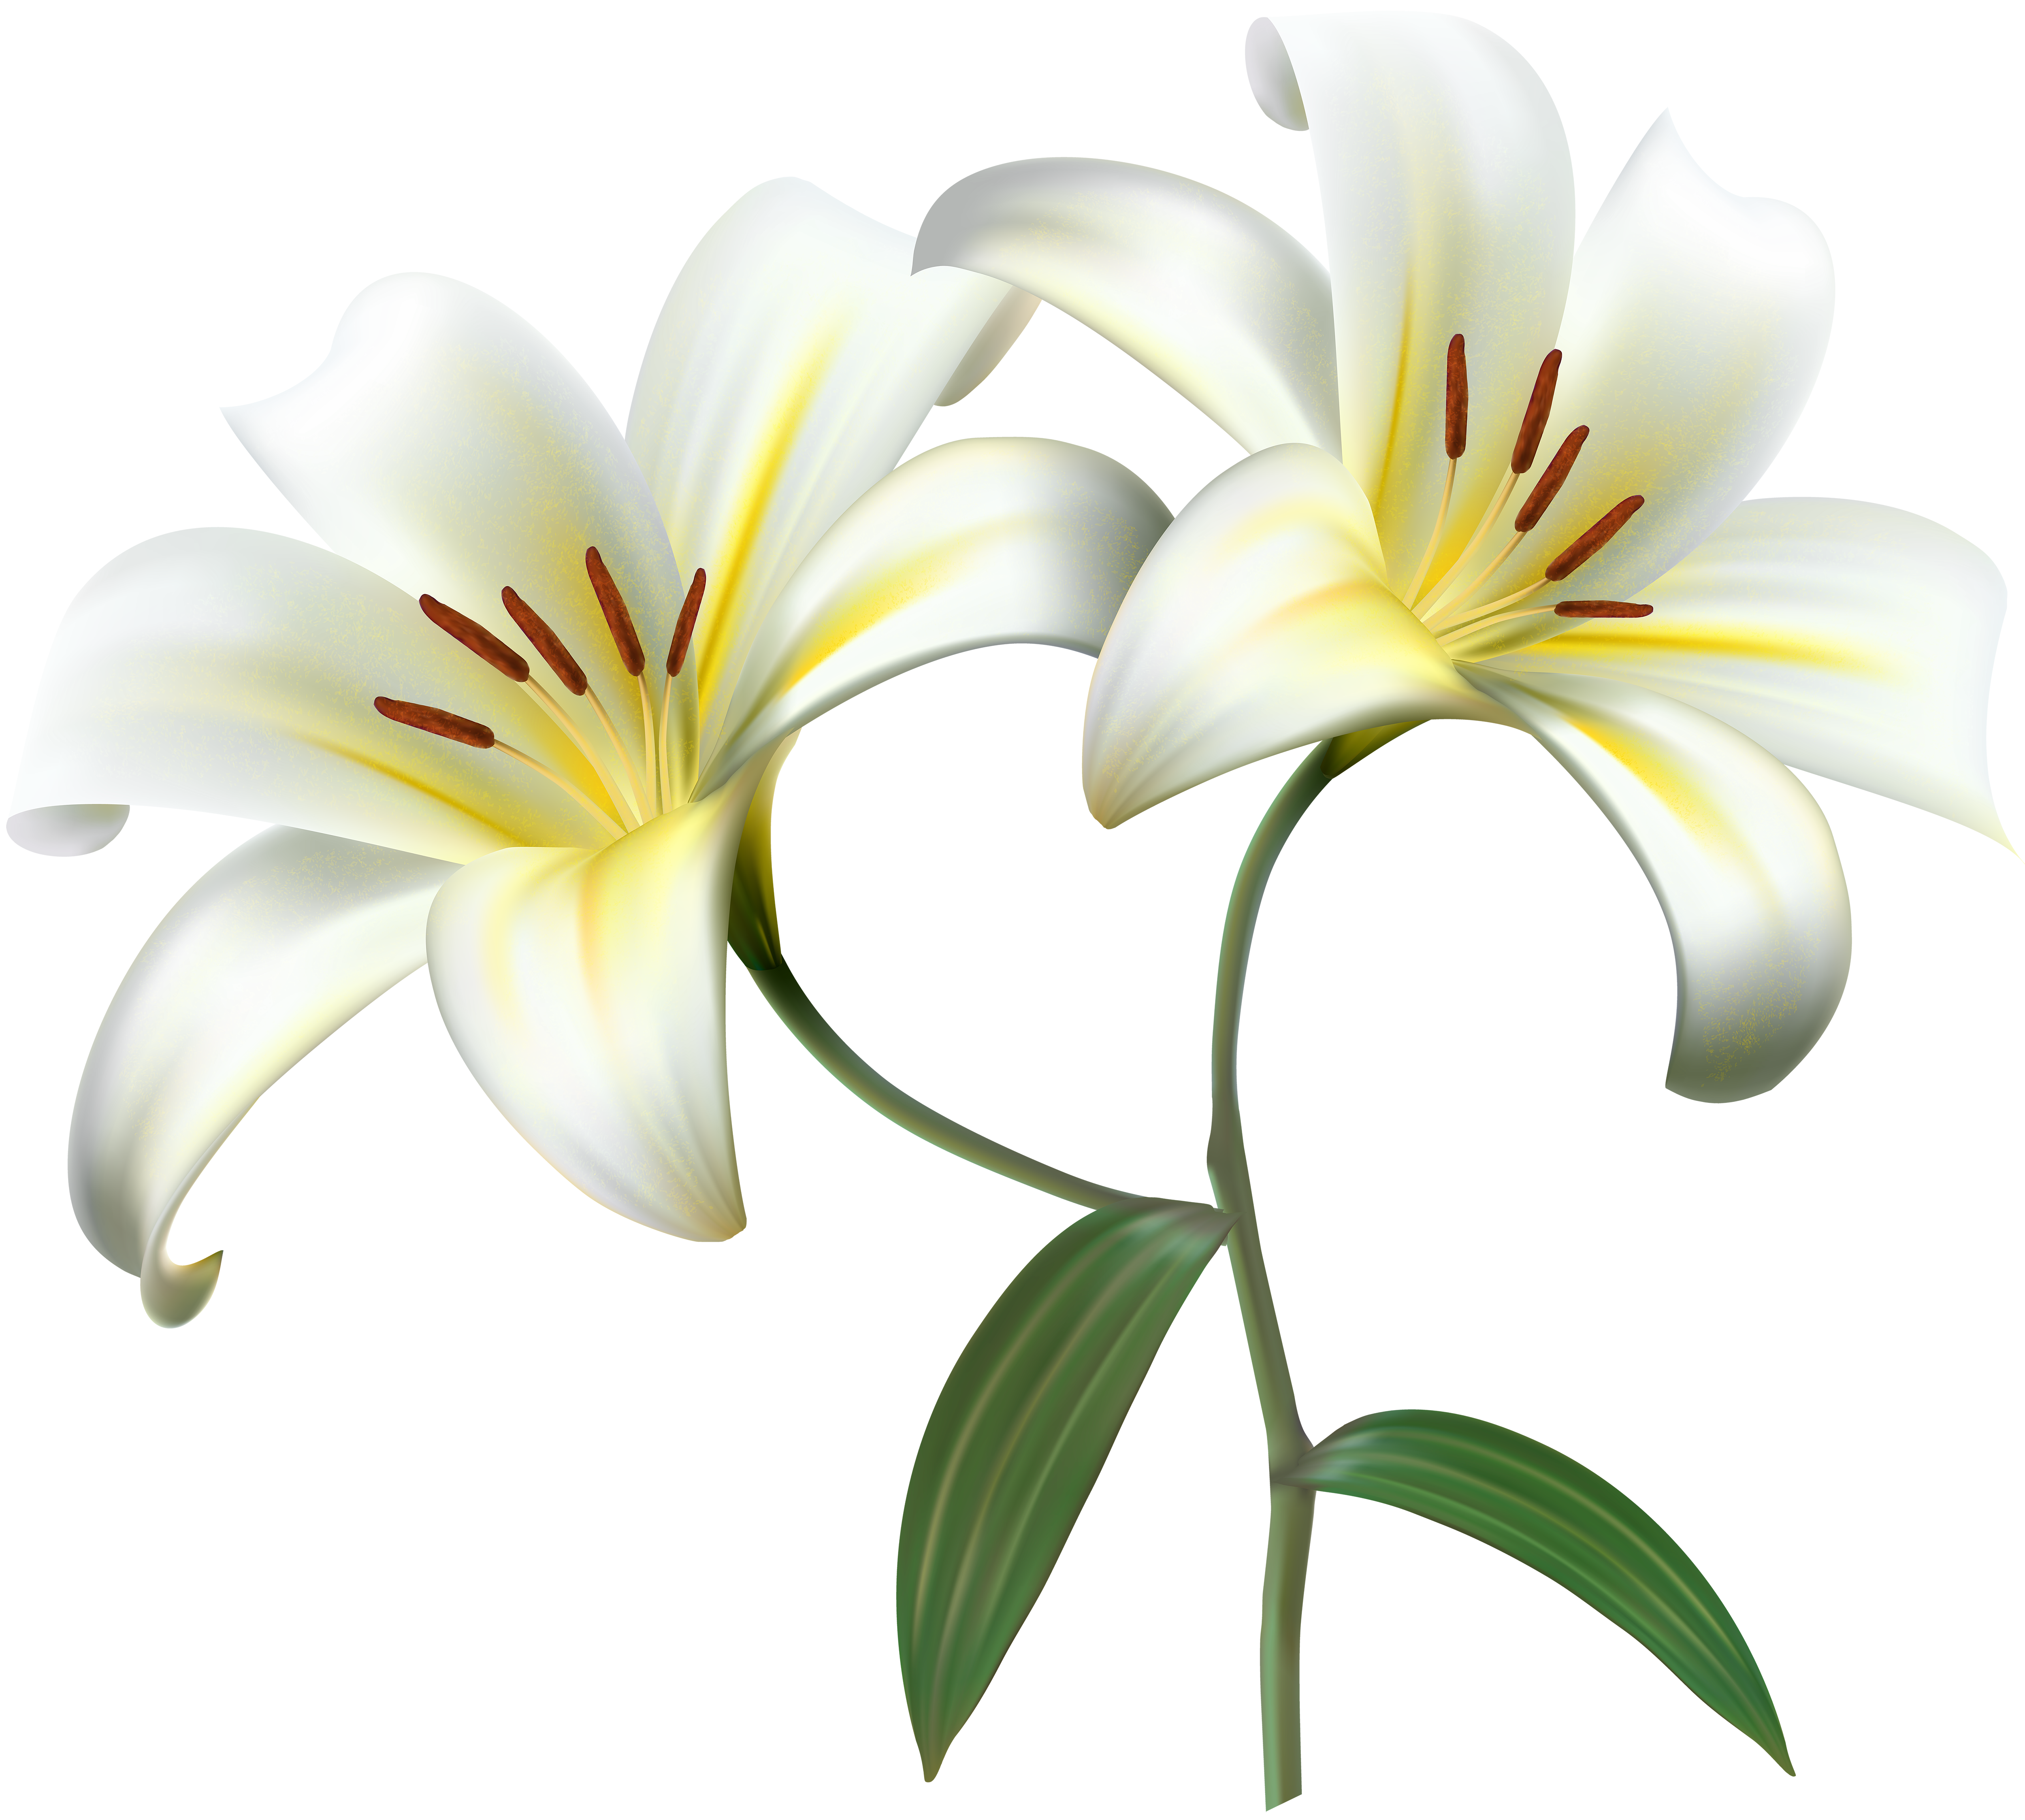 Easter lily garland png. White lilium flower decorative